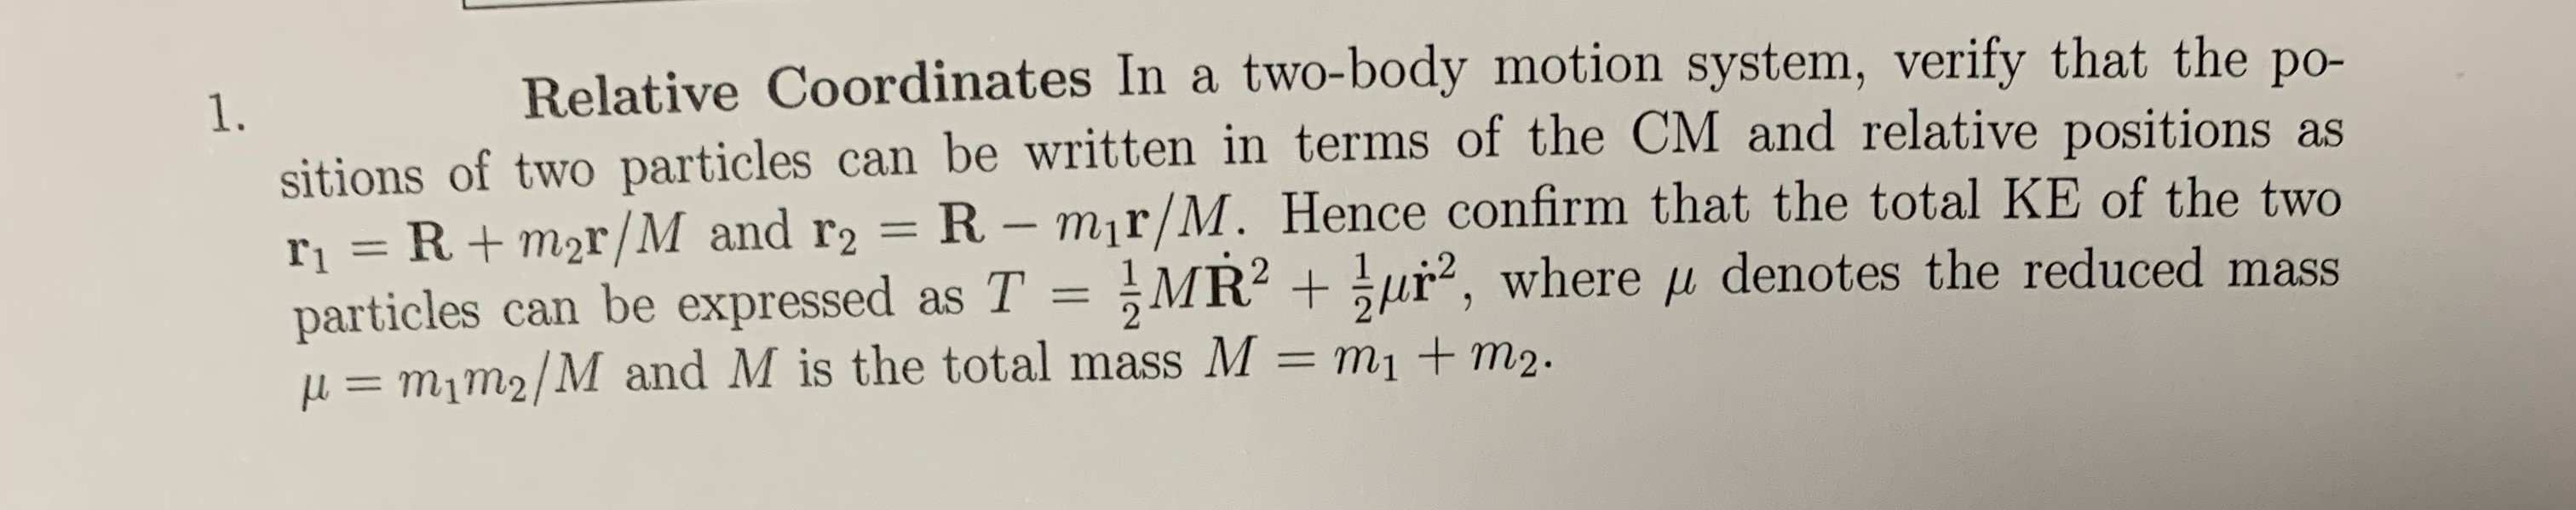 Relative Coordinates In a two-body motion system, verify that the po- 1. sitions of two particles can be written in terms of the CM and relative positions as r1 = R+m2r/M and r2 = R - mir/M. Hence confirm that the total KE of the two particles can be expressed as T = MR2 ur, where u denotes the reduced mass = m1m2/M and M is the total mass M = m1 + m2.